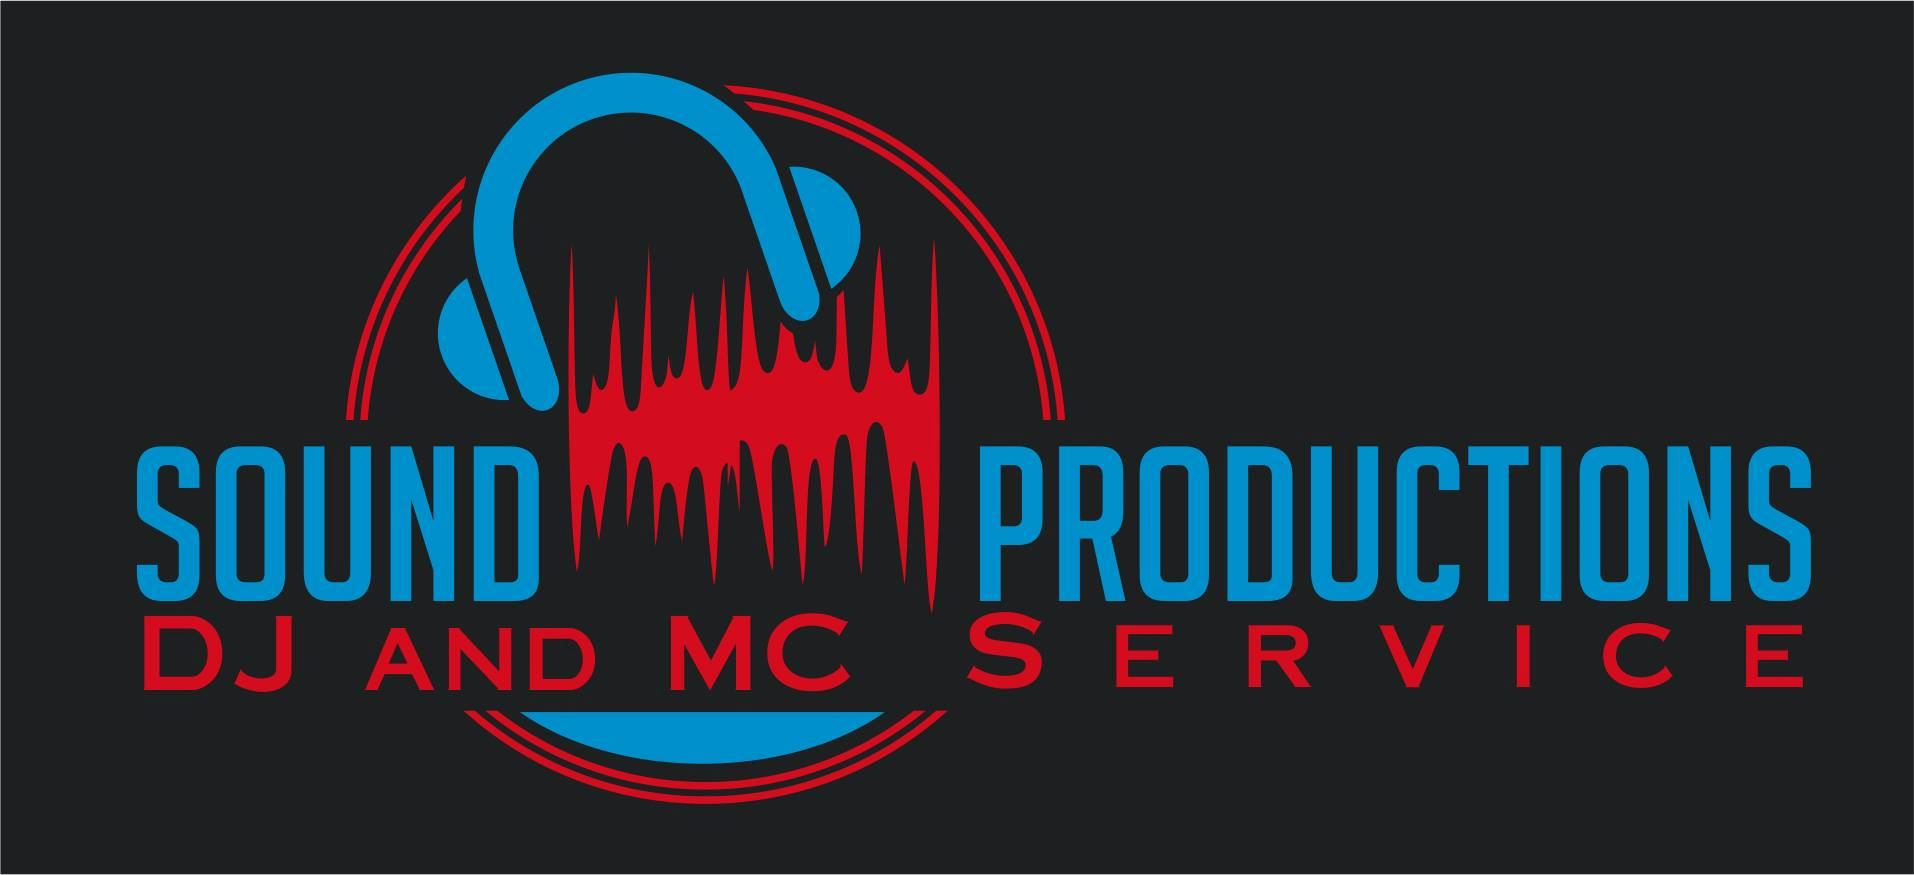 Sound Productions DJ and MC Service - 1